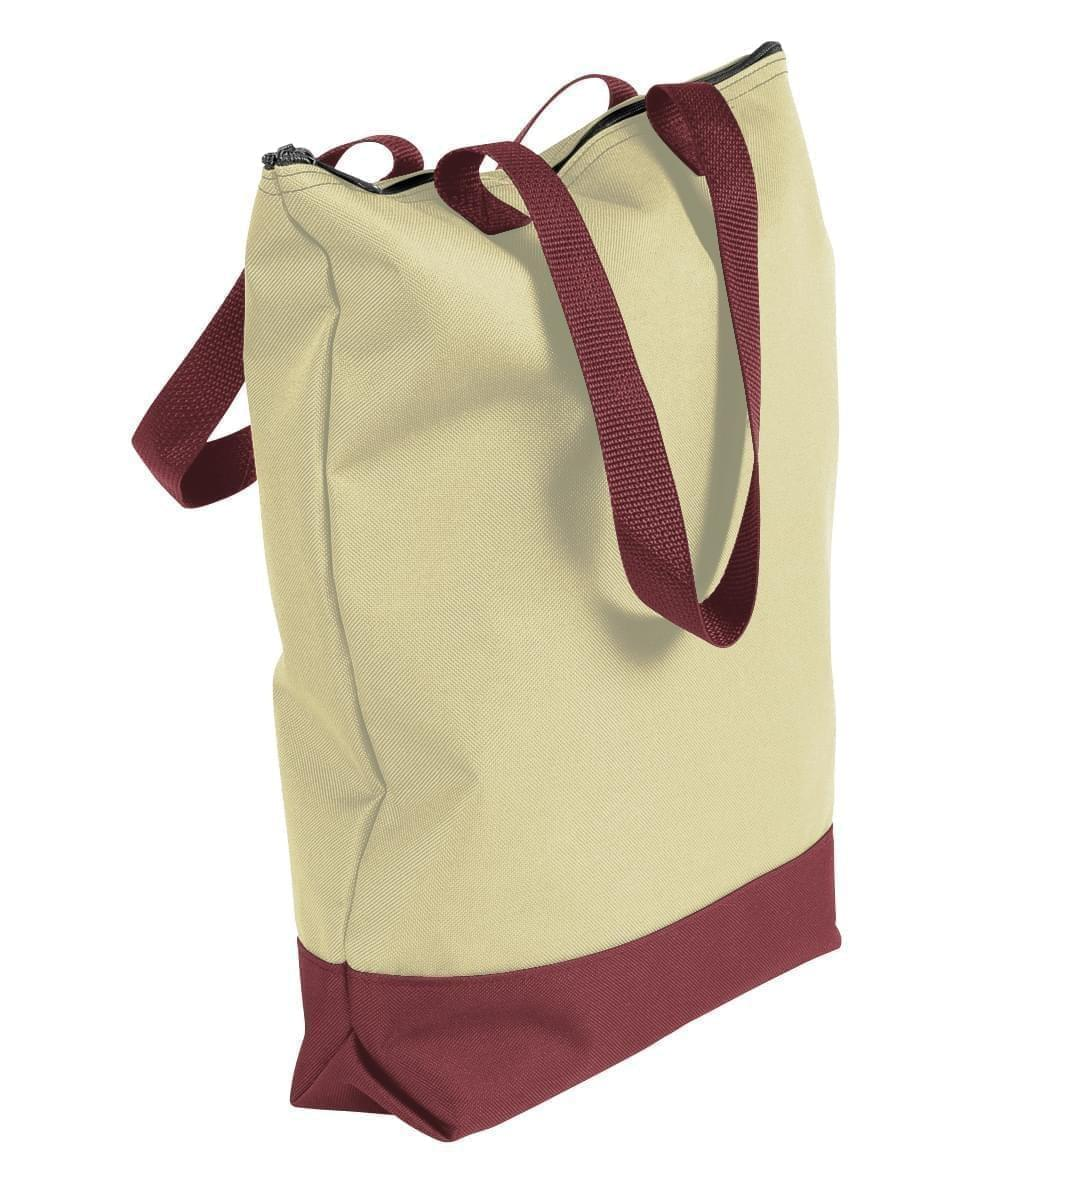 USA Made Canvas Portfolio Tote Bags, Natural-Burgundy, 1AAMX1UAKE